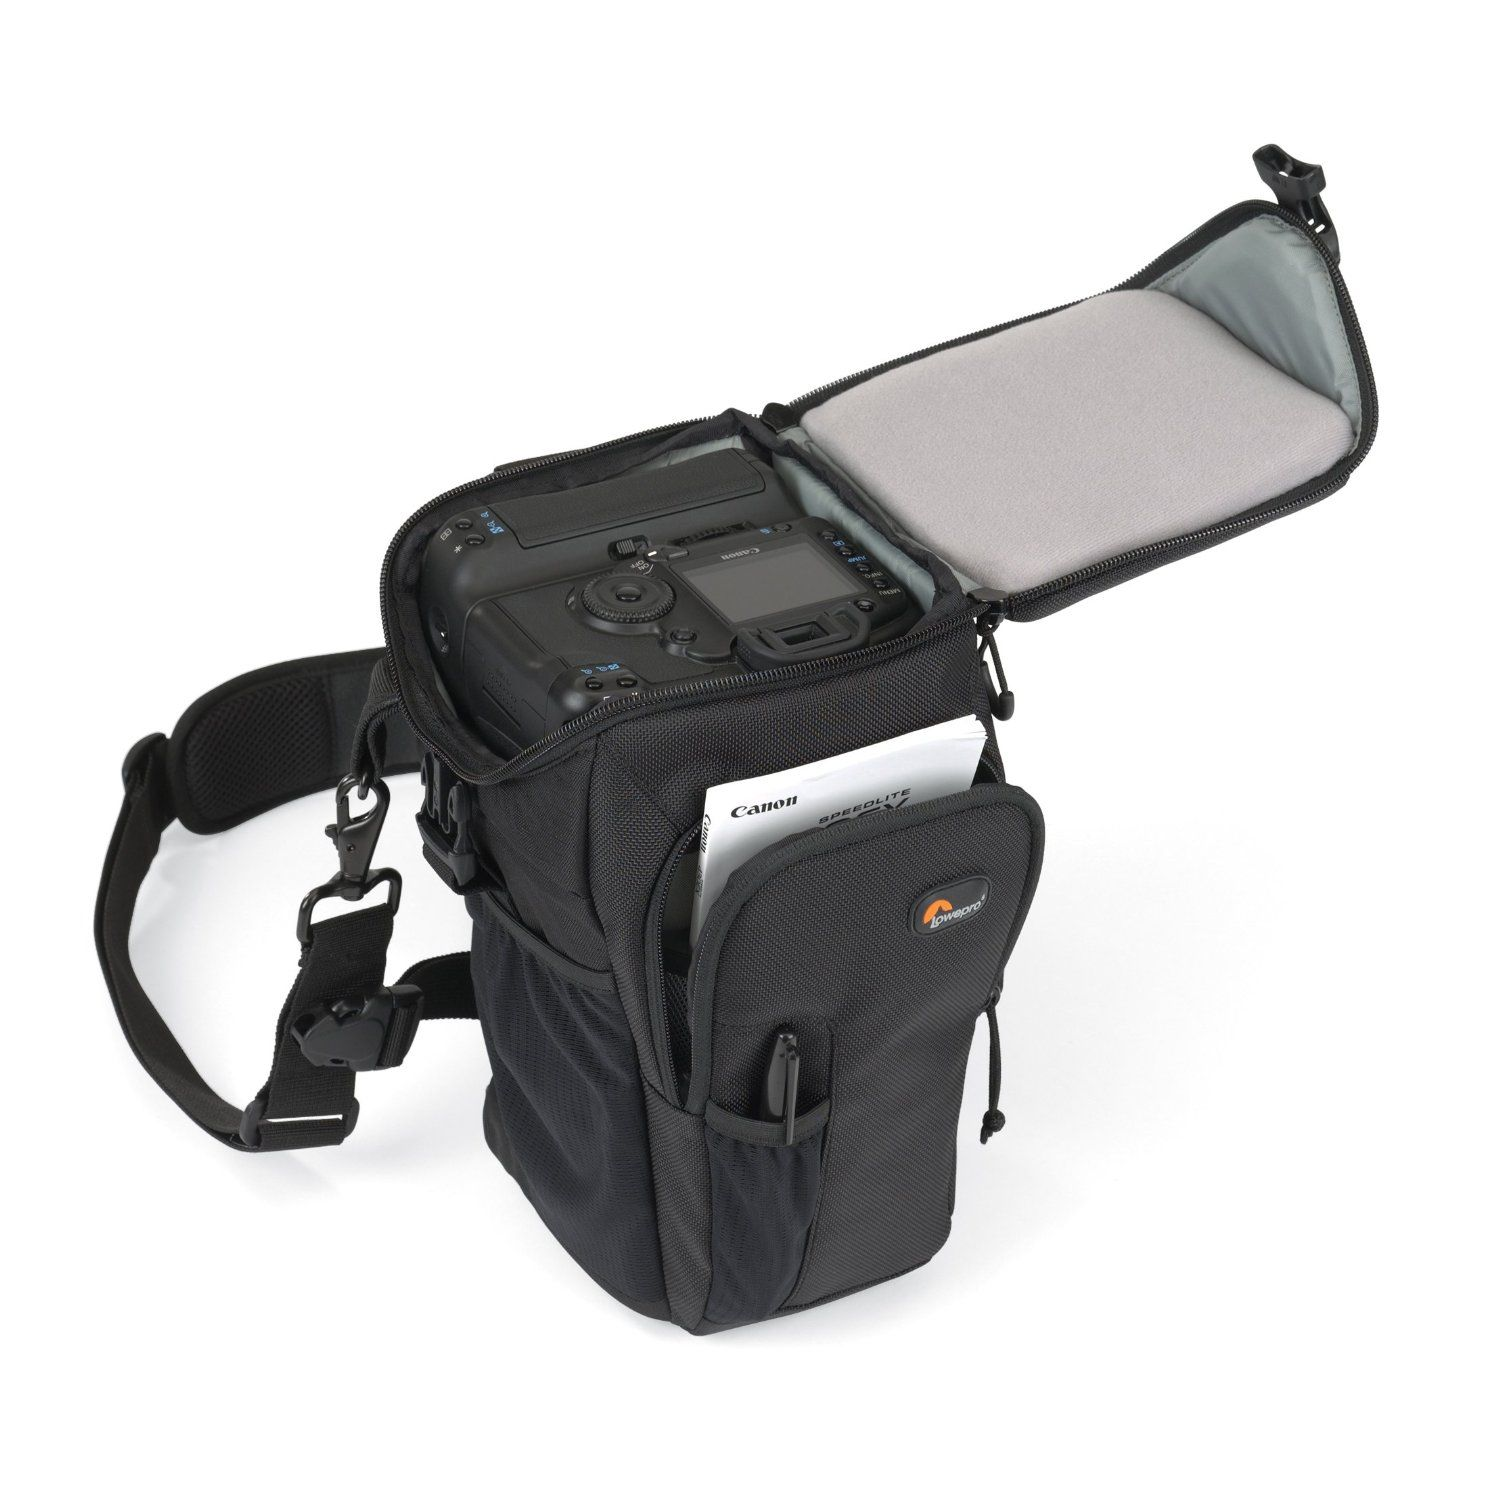 Lowepro Toploader Zoom 45 Aw Camera Bag 8495 This Item Ships 50 Ii Blue Amazon